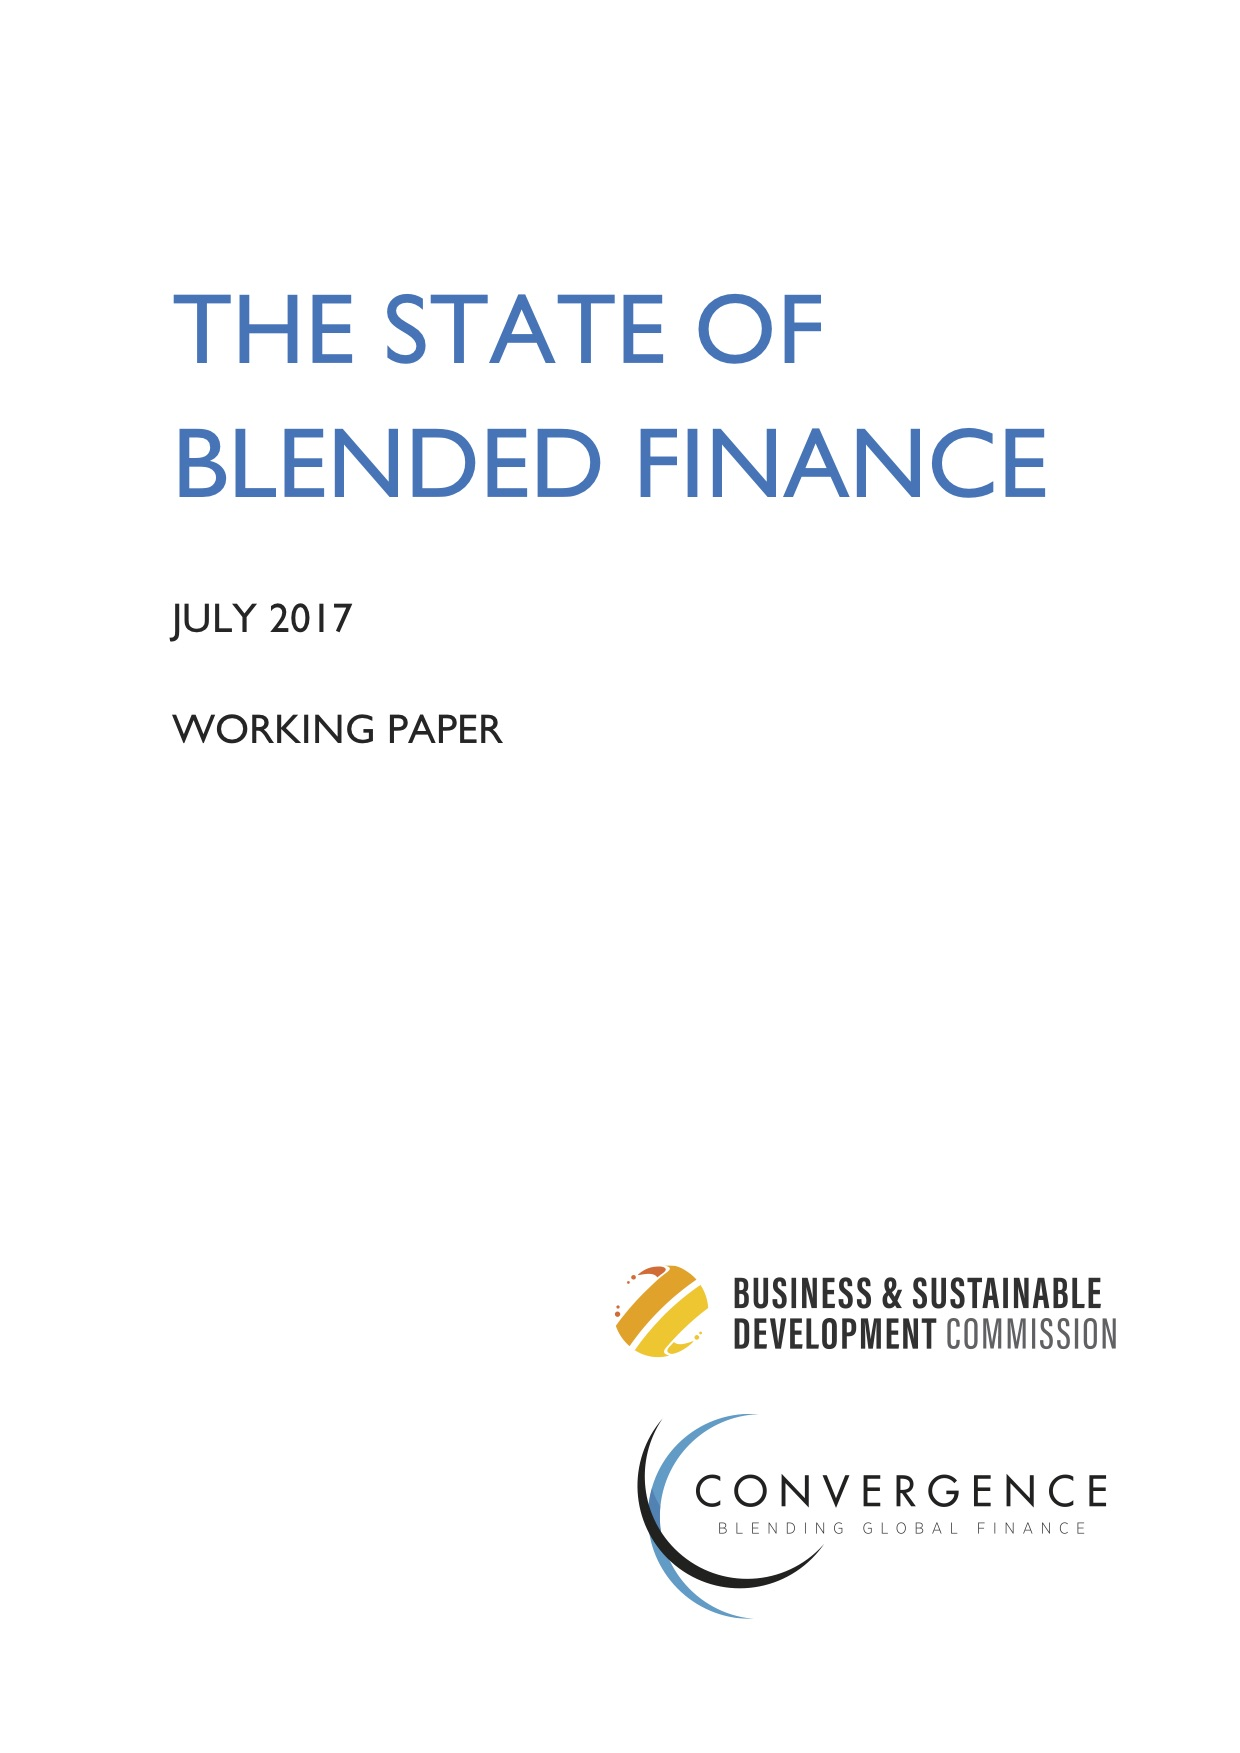 The State of Blended Finance 2017